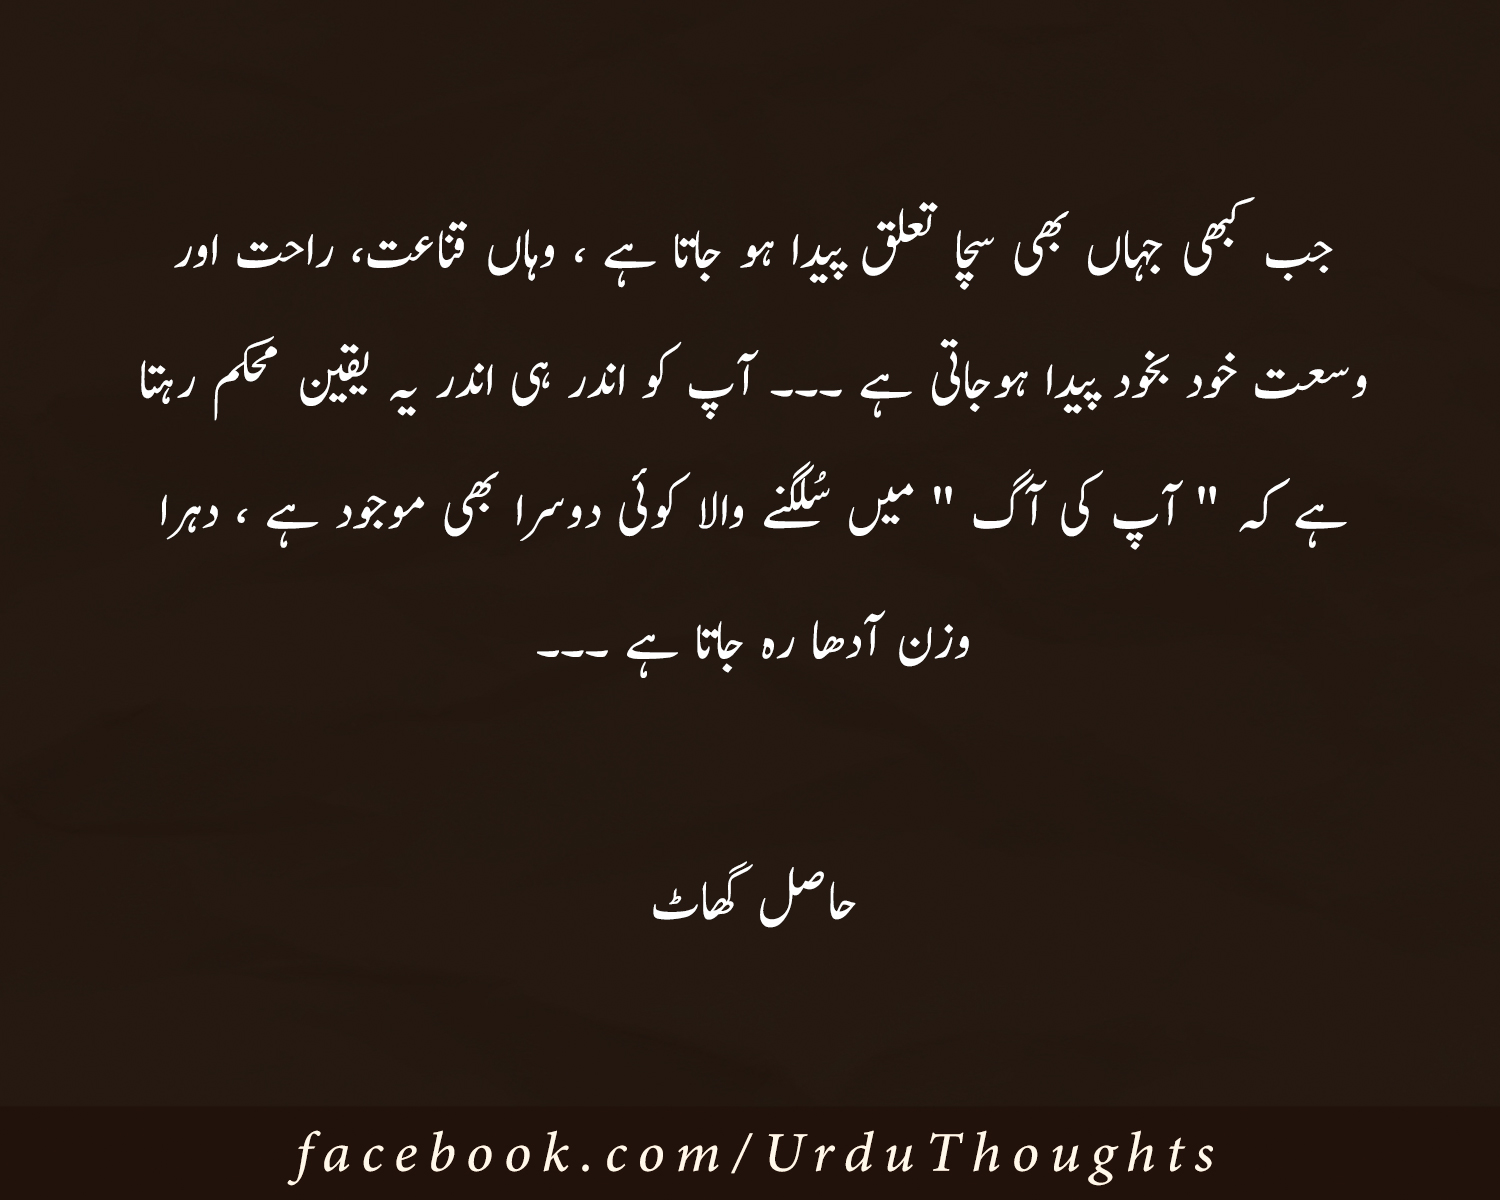 Images for urdu quotes famous urdu quotes images urdu for Bano qudsia quotes